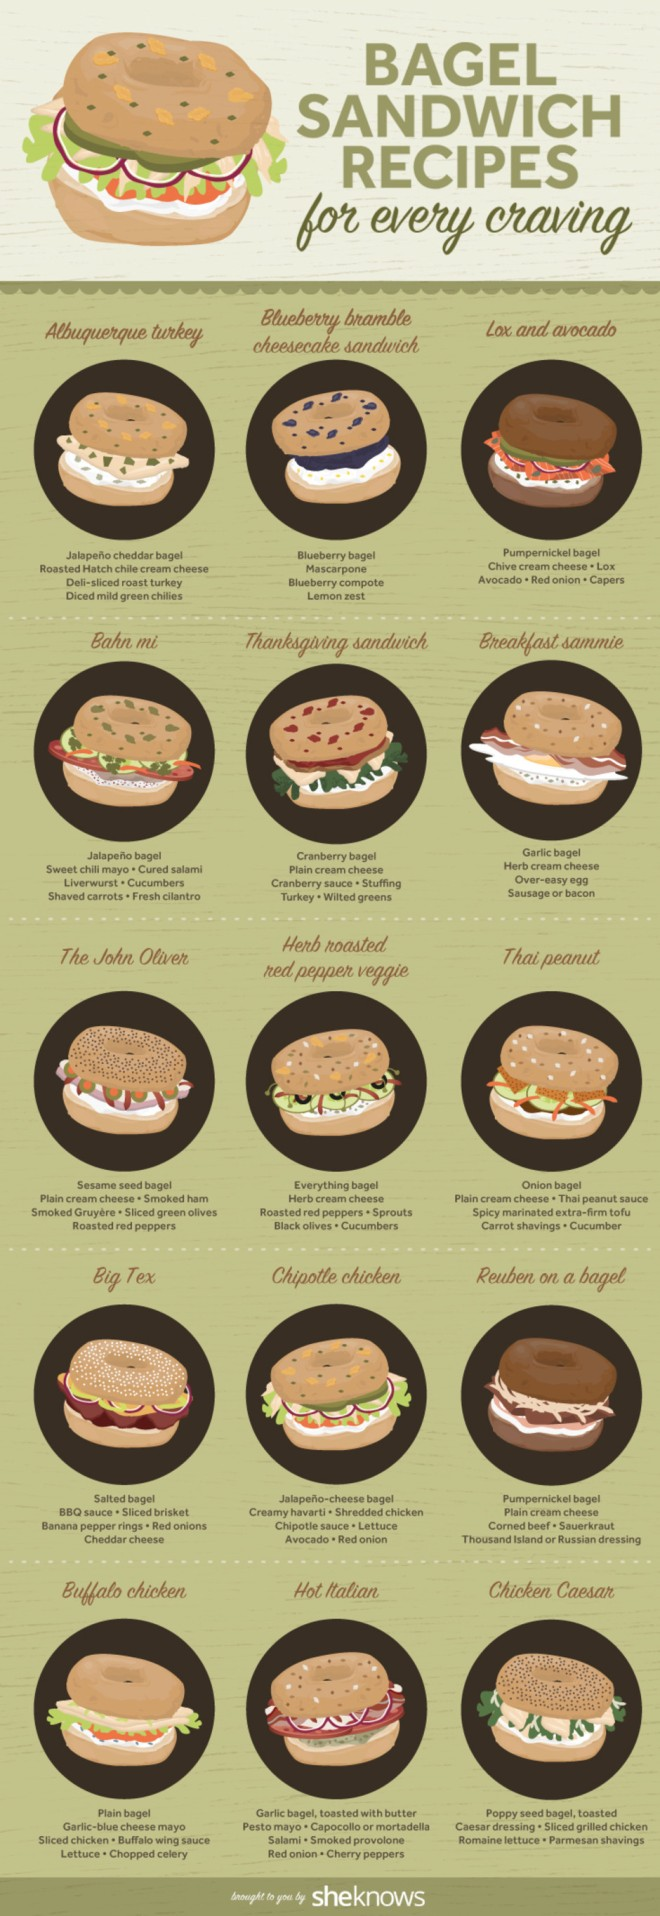 bagelsandwiches_infographic_j53ukx